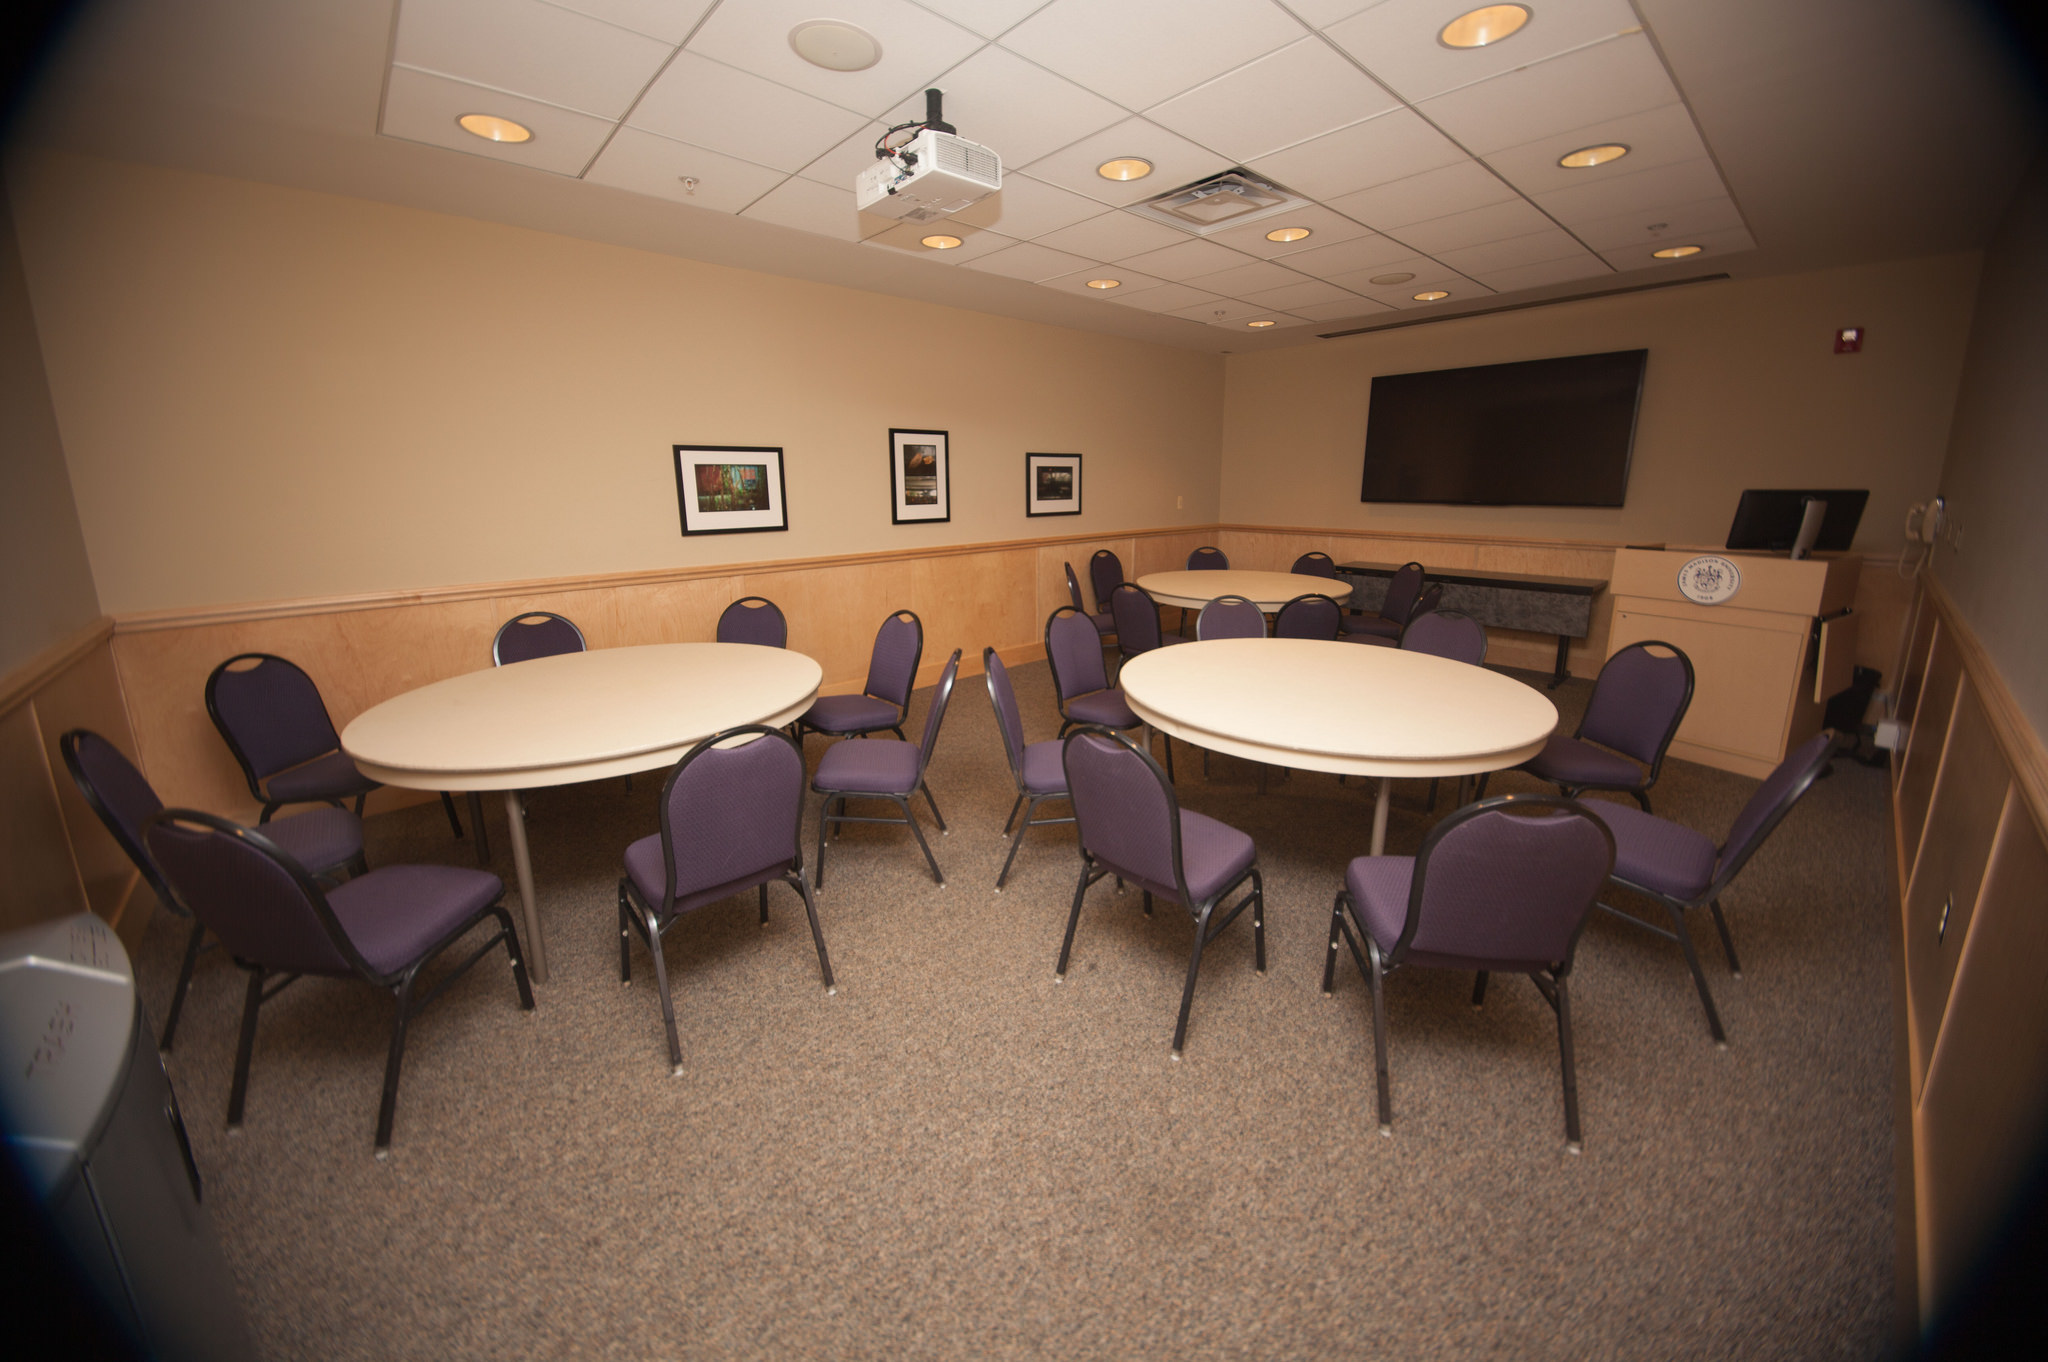 Photo of a small conference room with banquet setup.